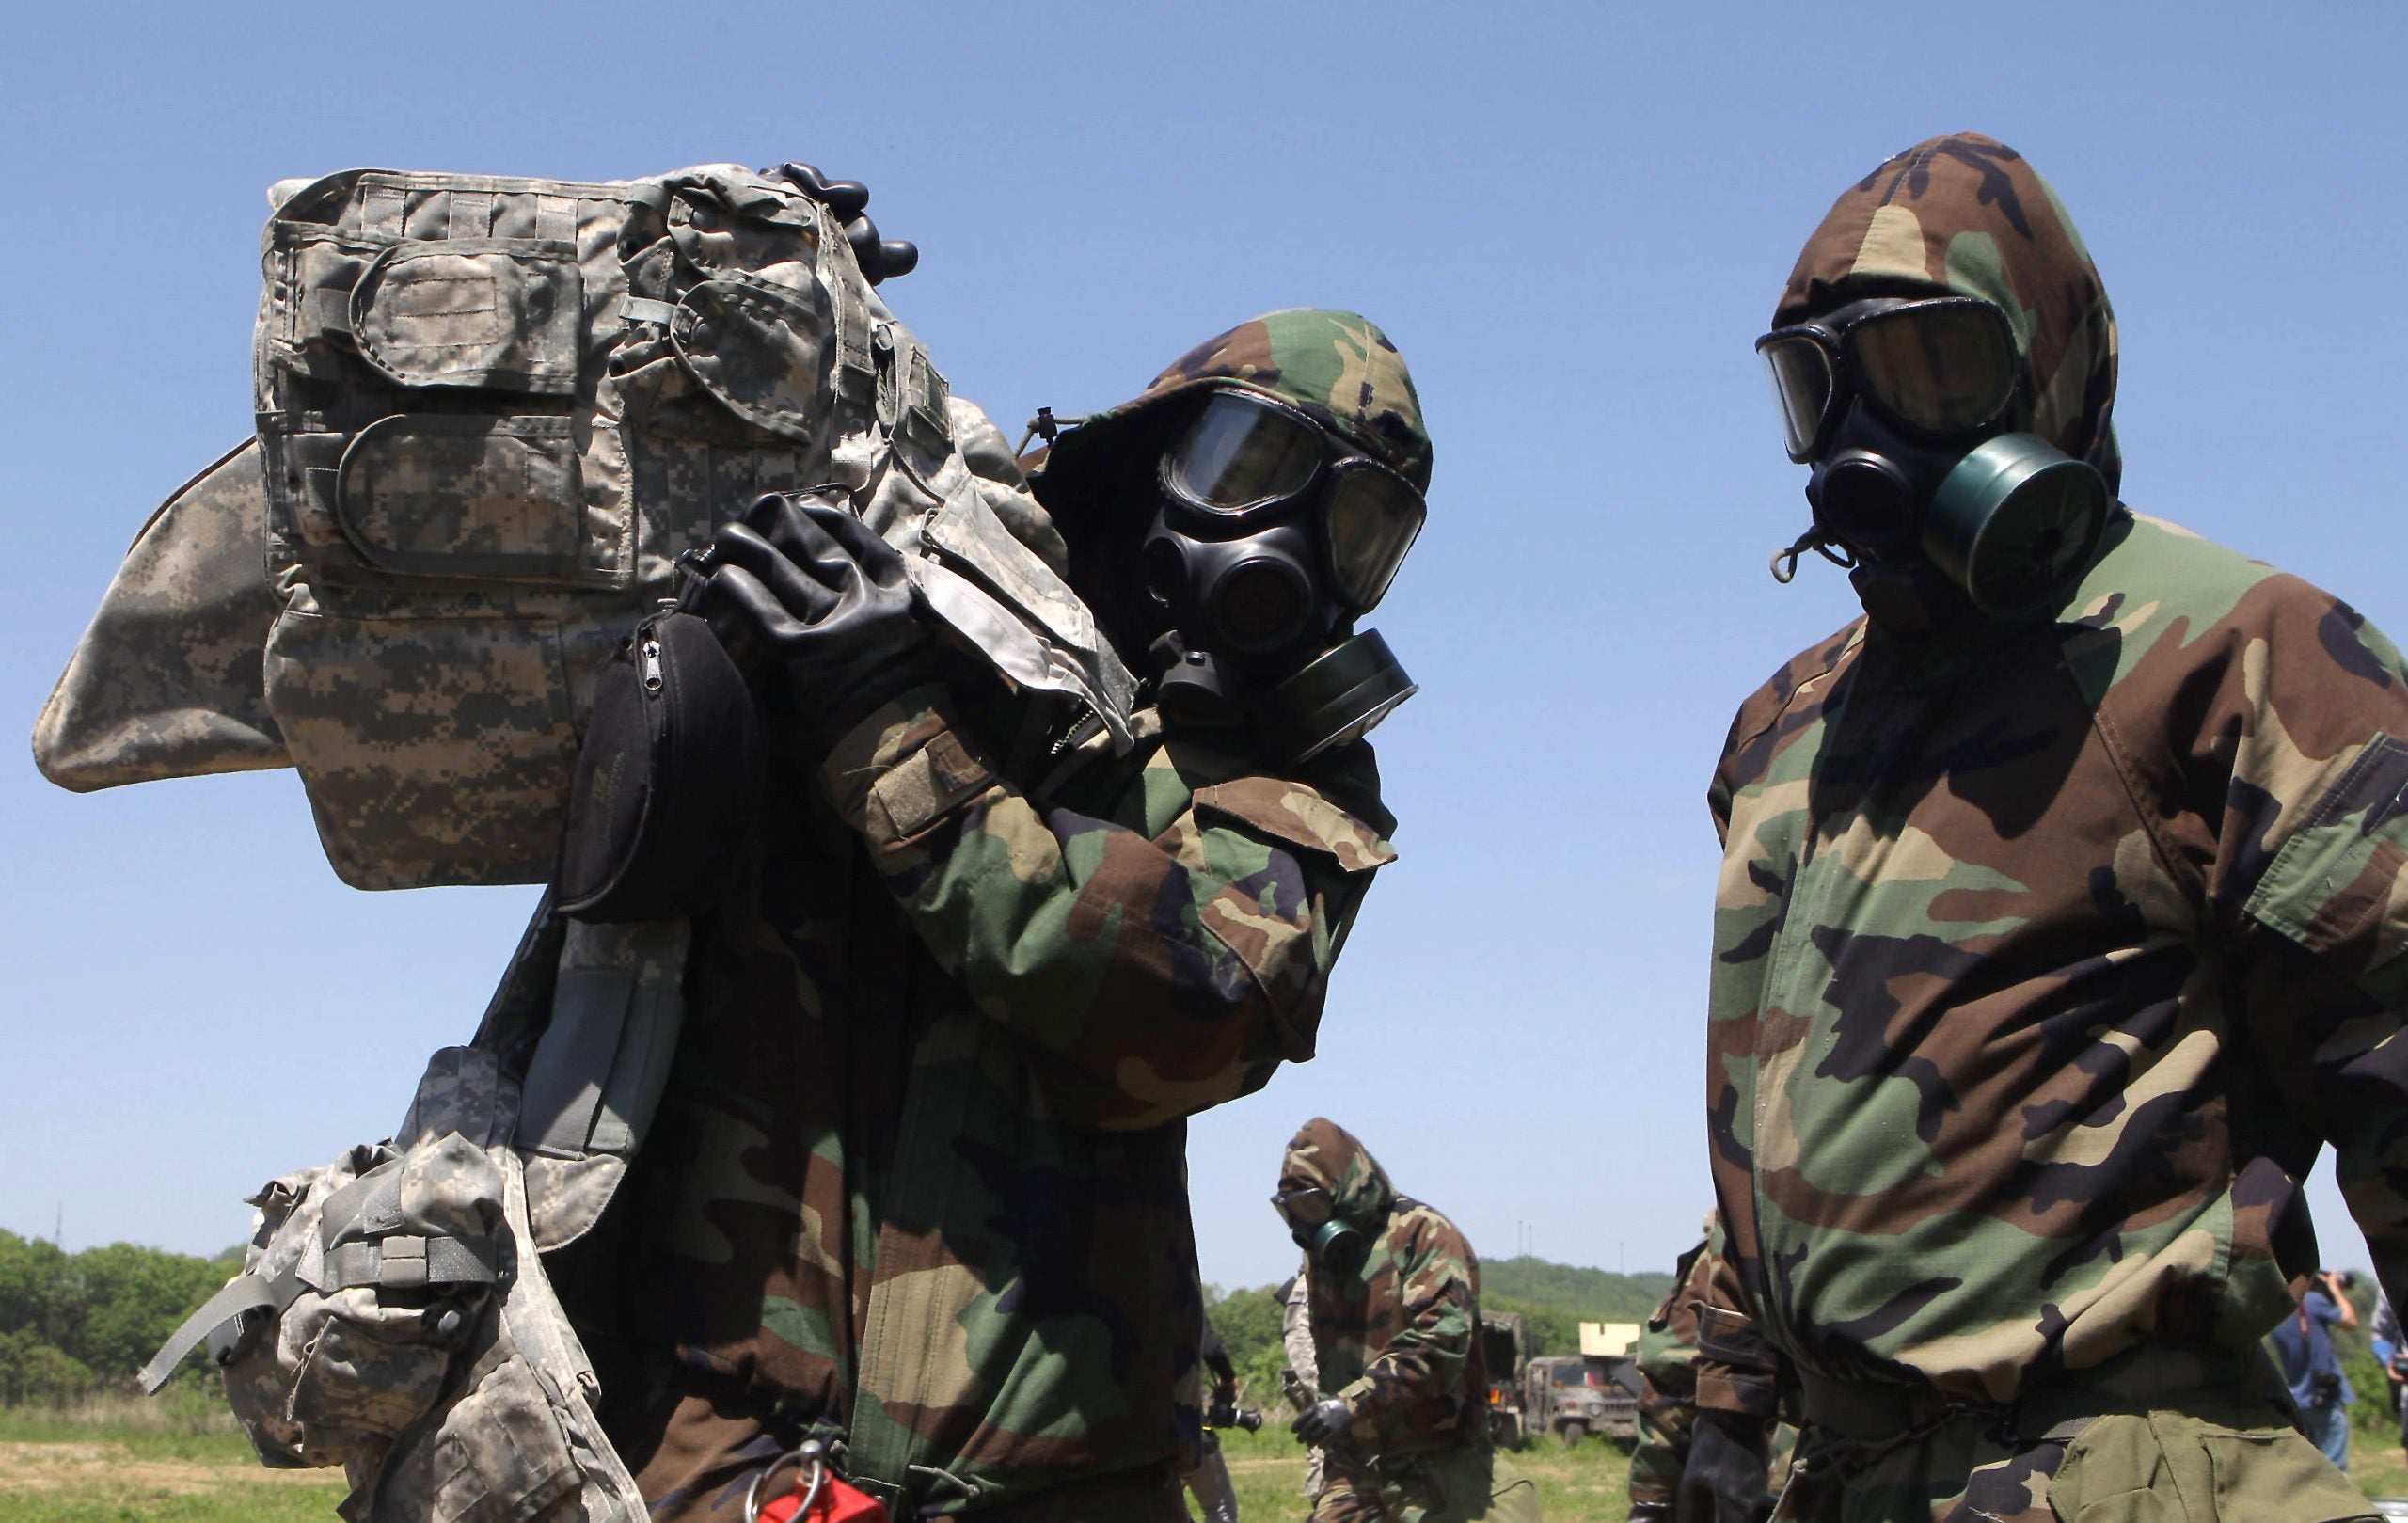 The anti-chemical weapons technology that could help rebuild Syria